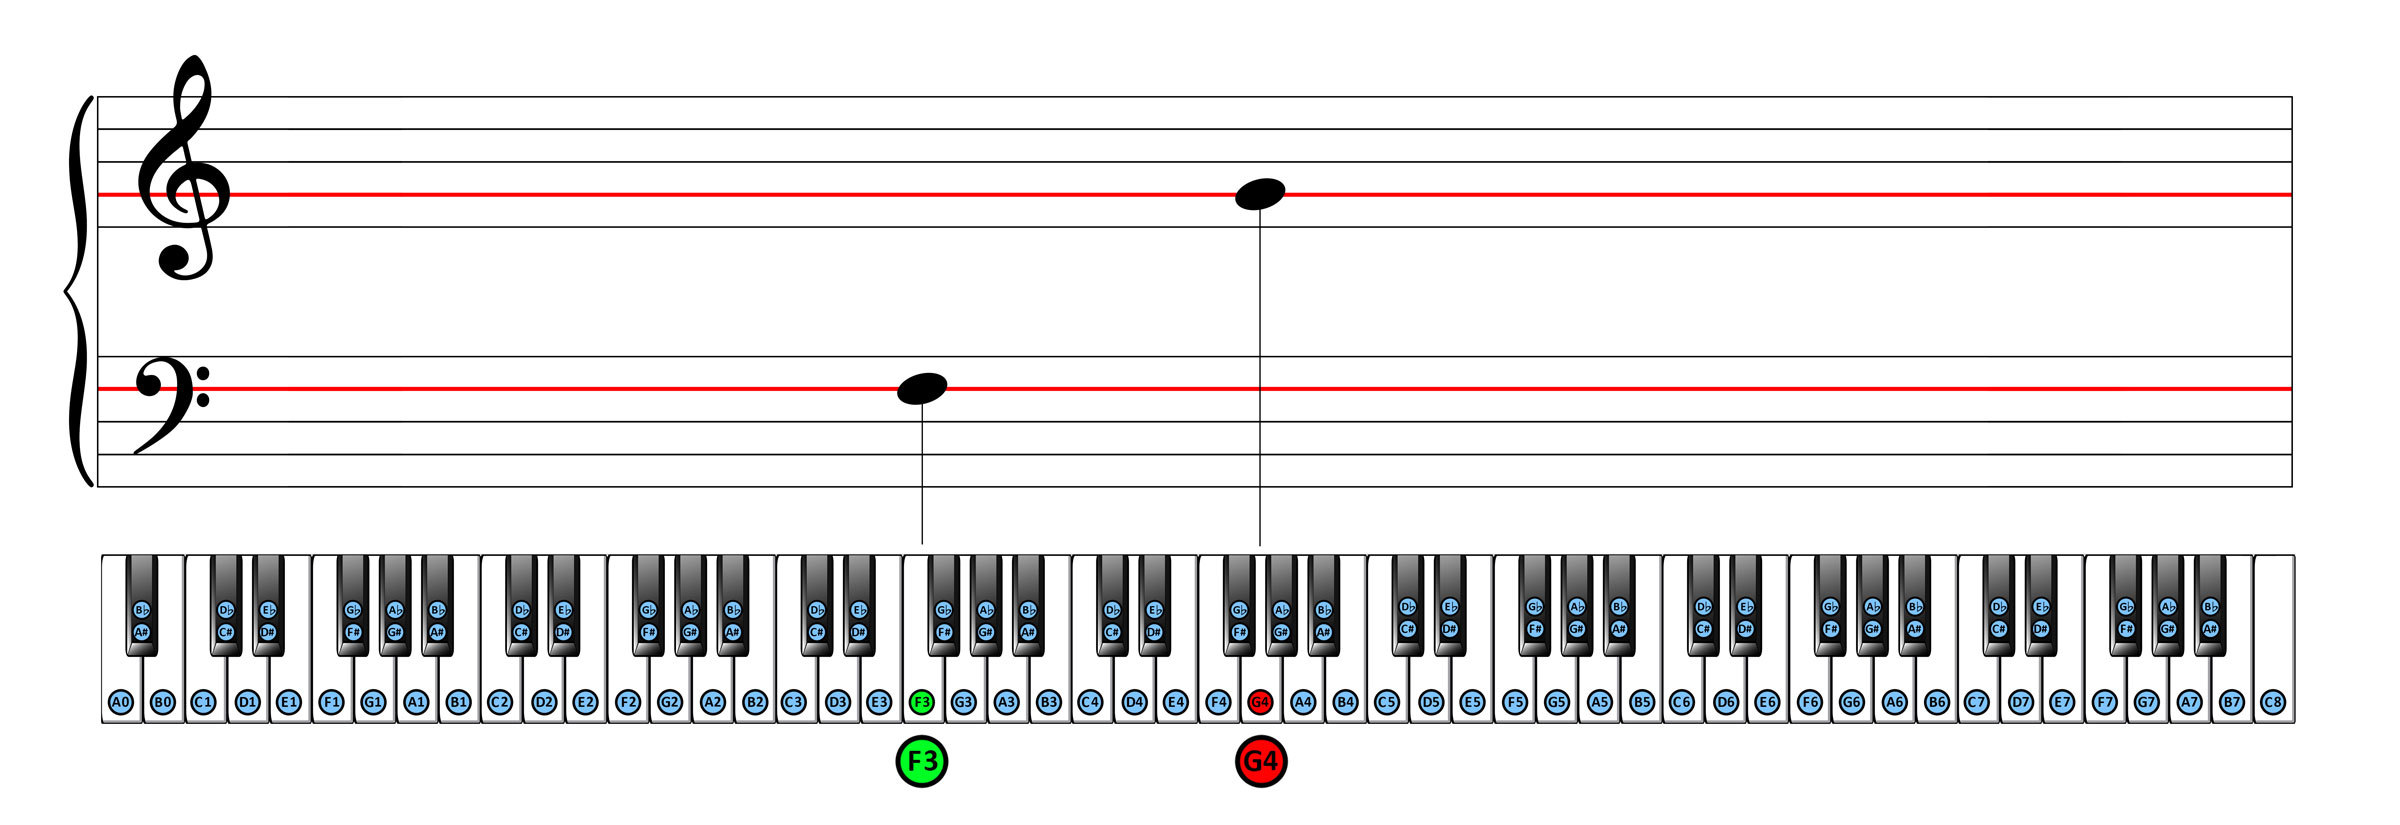 Full piano keyboard correlated with G-line and F-line